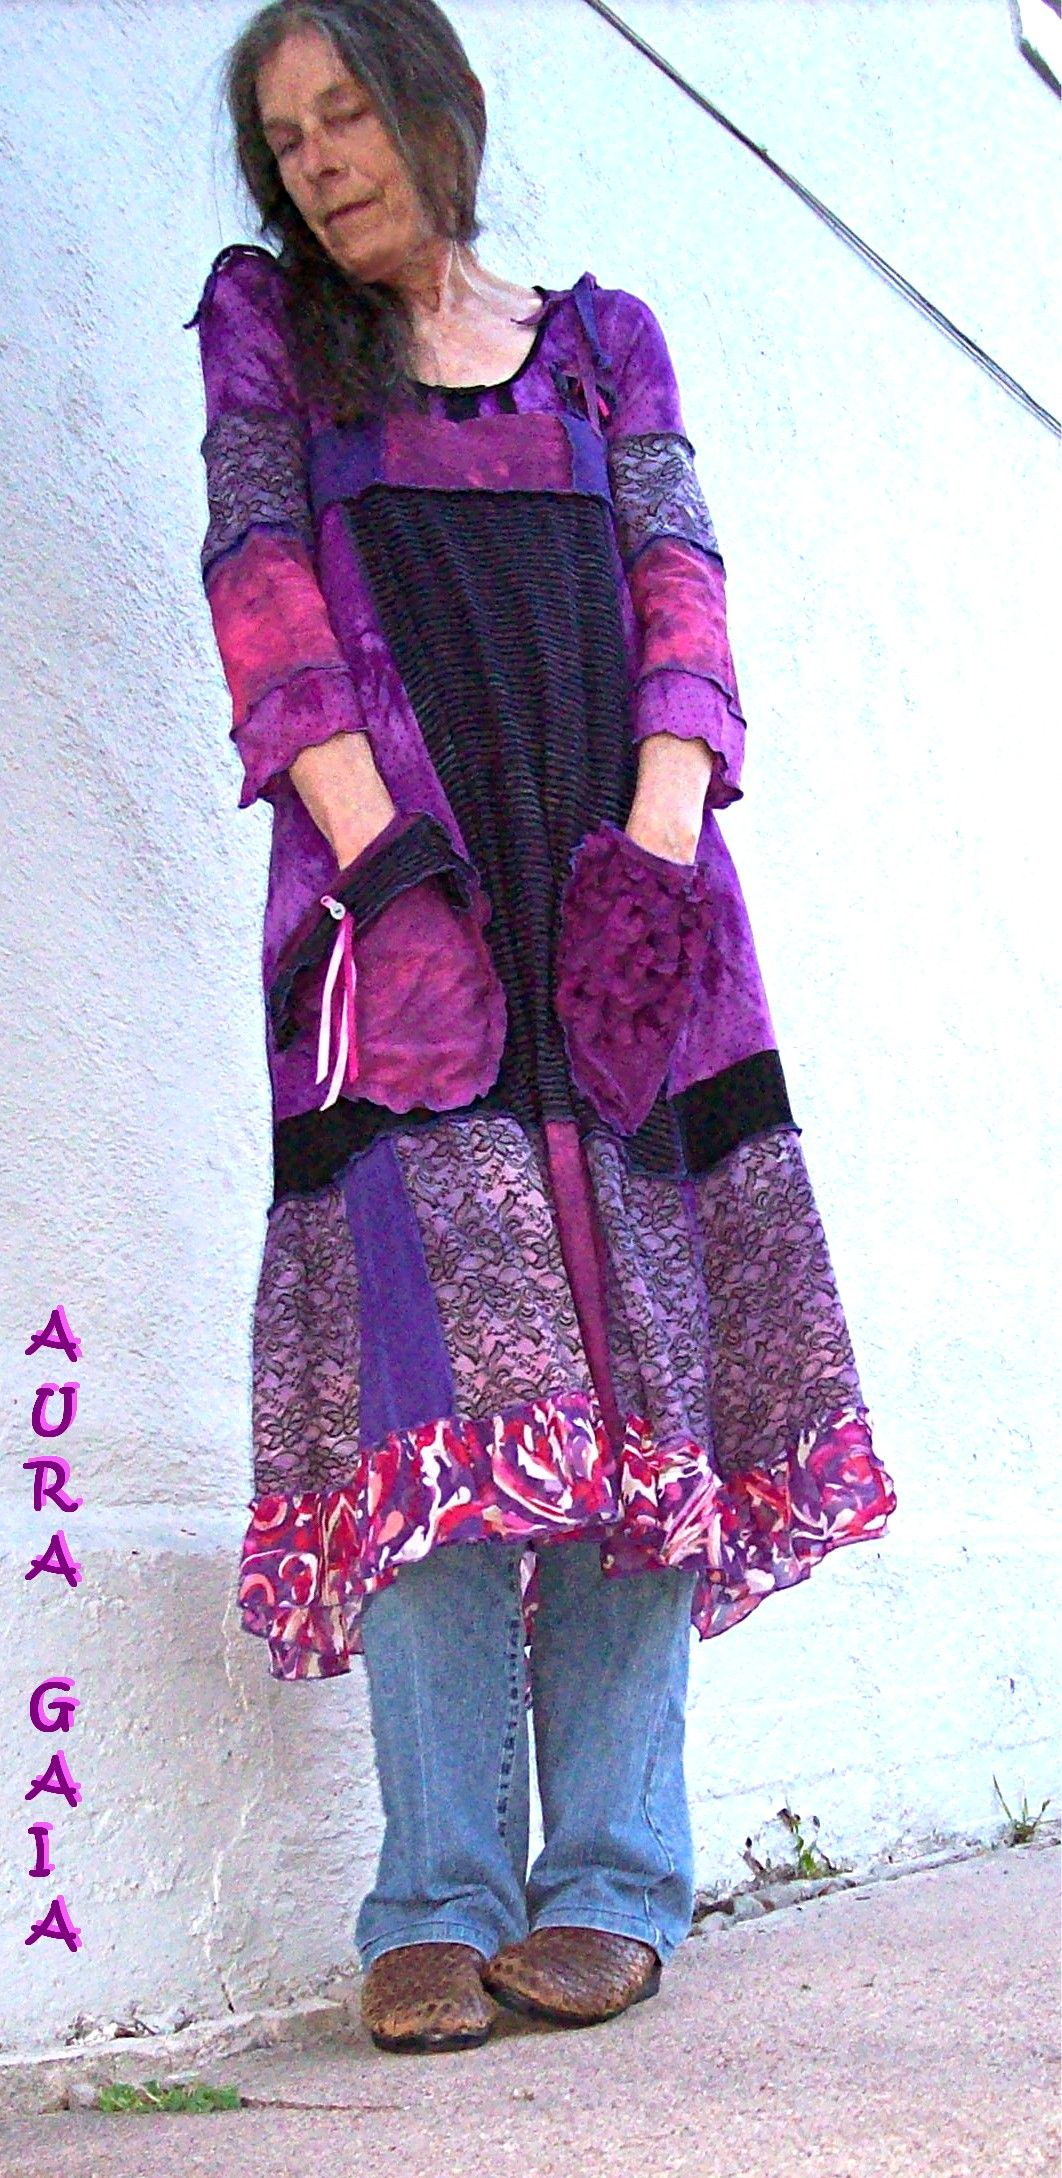 Tunic & Ragdoll Dress Tunic...Layered OverDyed Upcycled 2Pc AuraGaia